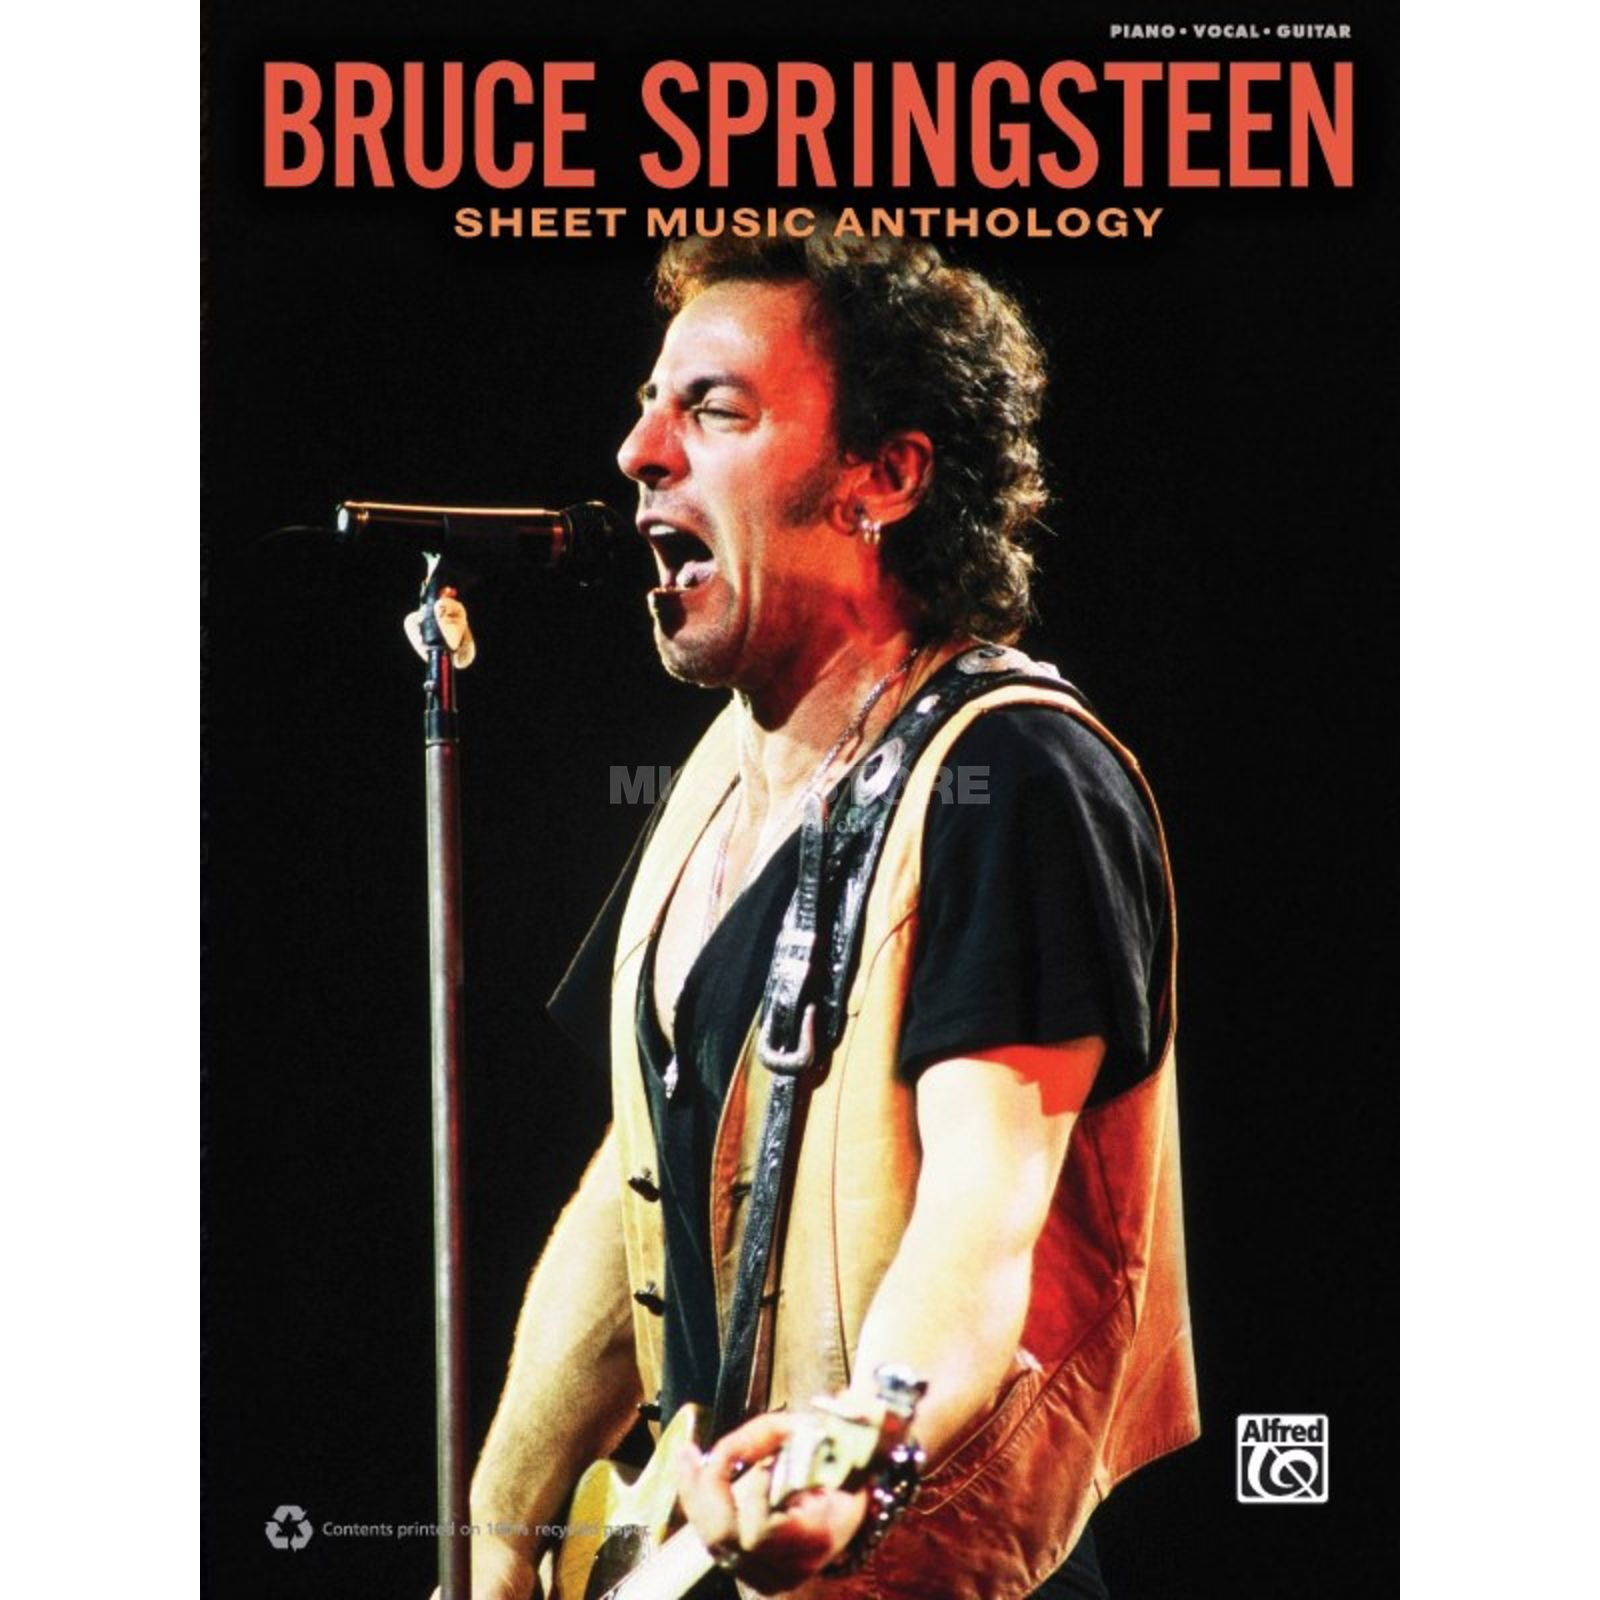 Alfred Music Bruce Springsteen: Sheet Music Anthology Produktbillede